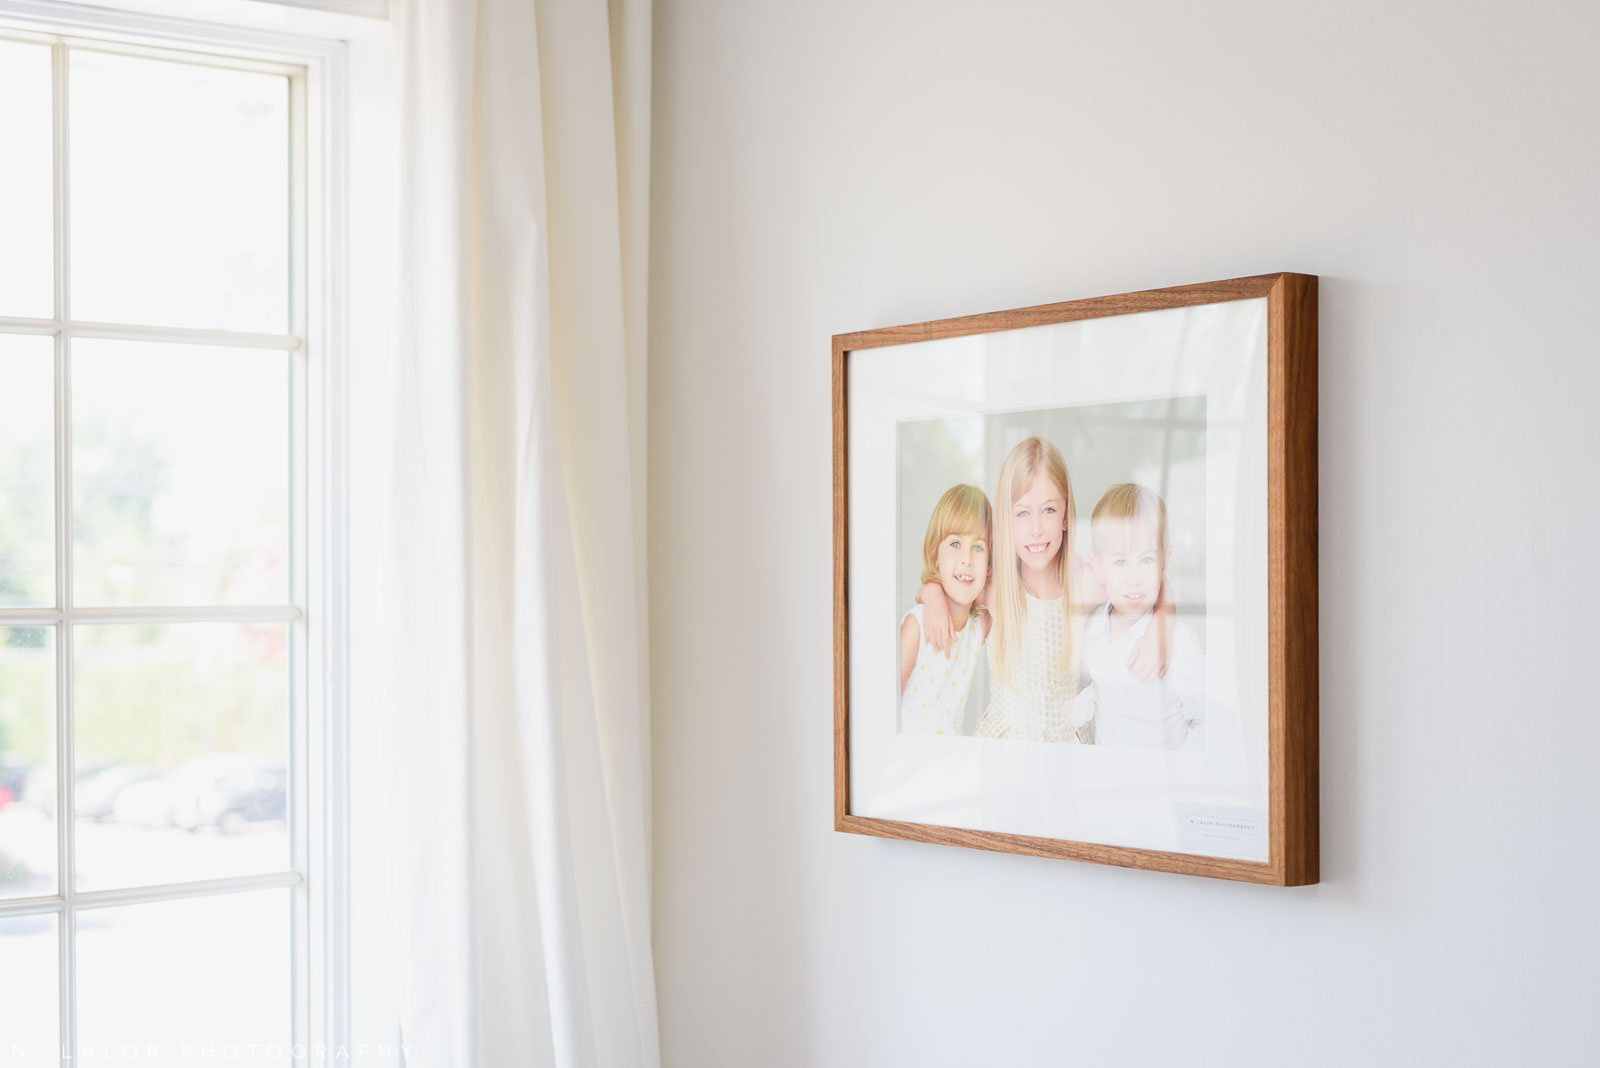 Image of a framed portrait on a wall. Photos by N. Lalor Photography, Studio located in Greenwich Connecticut.